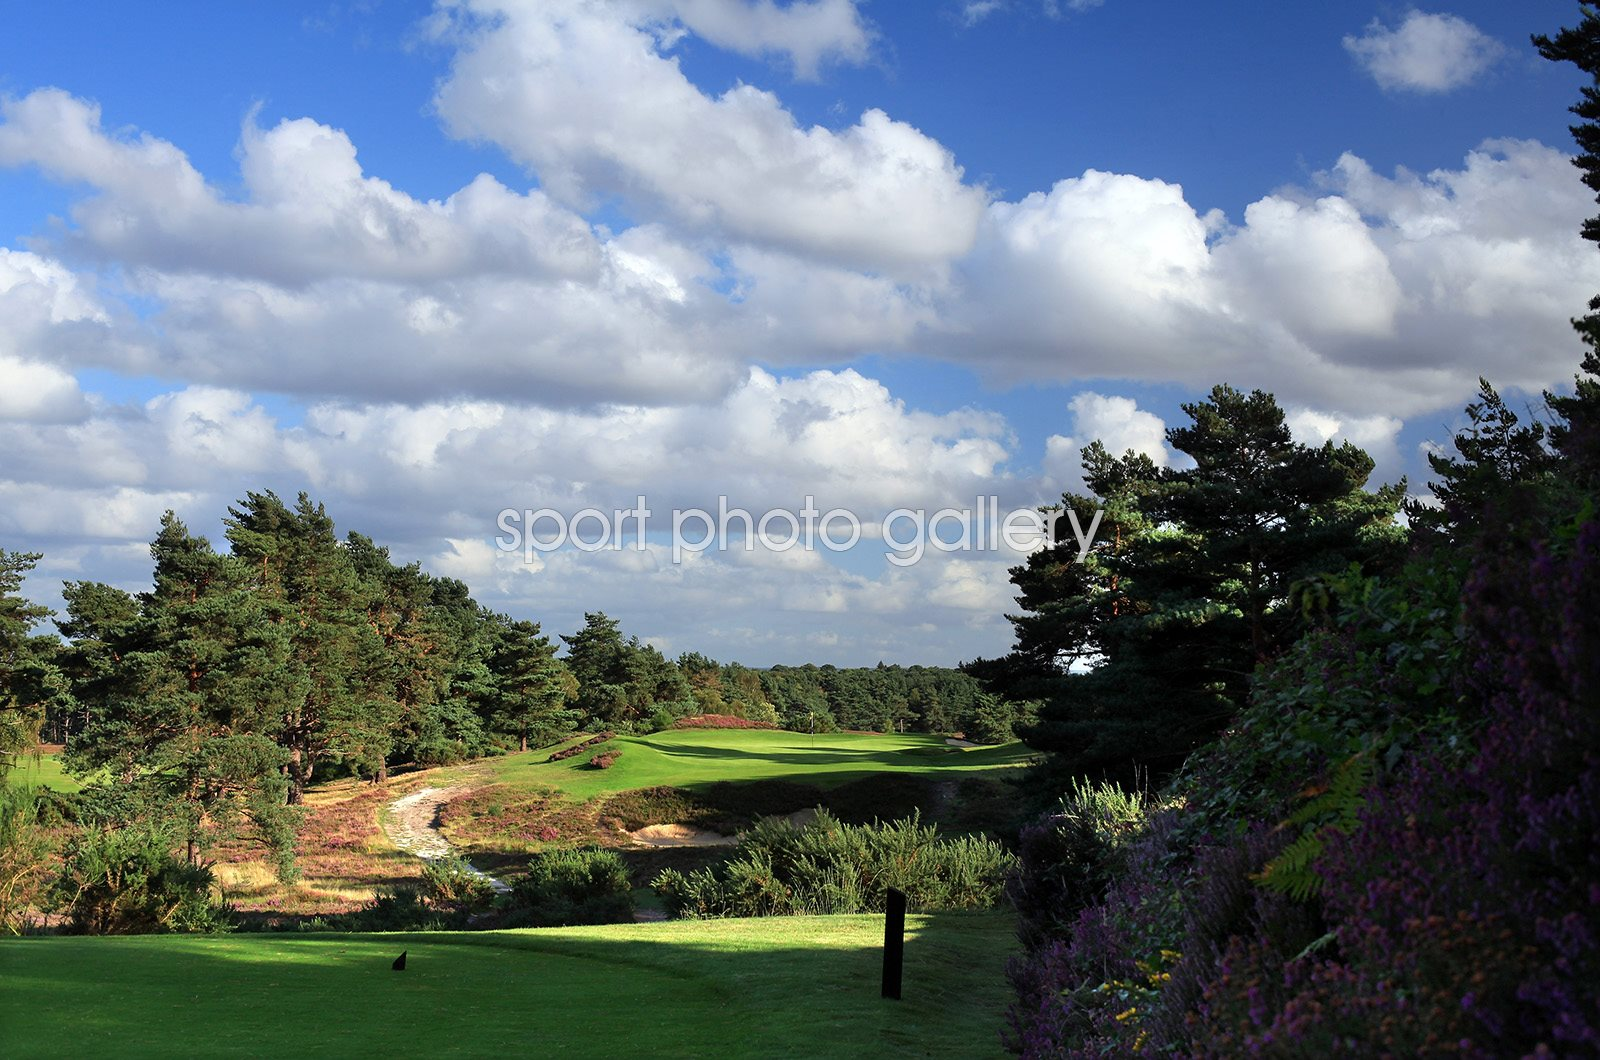 Sunningdale Golf Club New Course